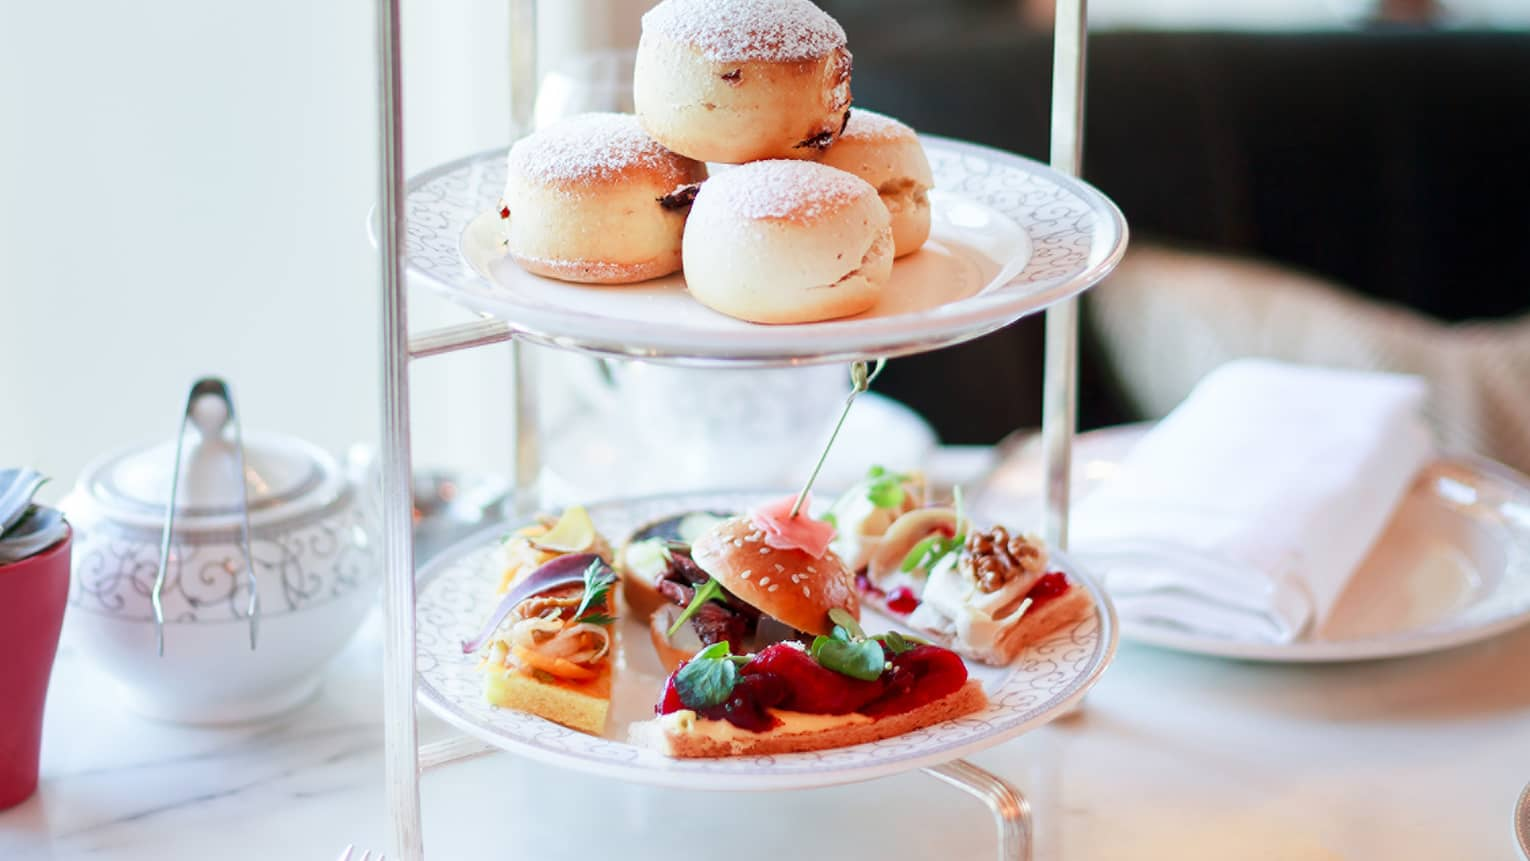 Dogmersfield Breakfast Tea dessert tray with scones, small slider sandwiches